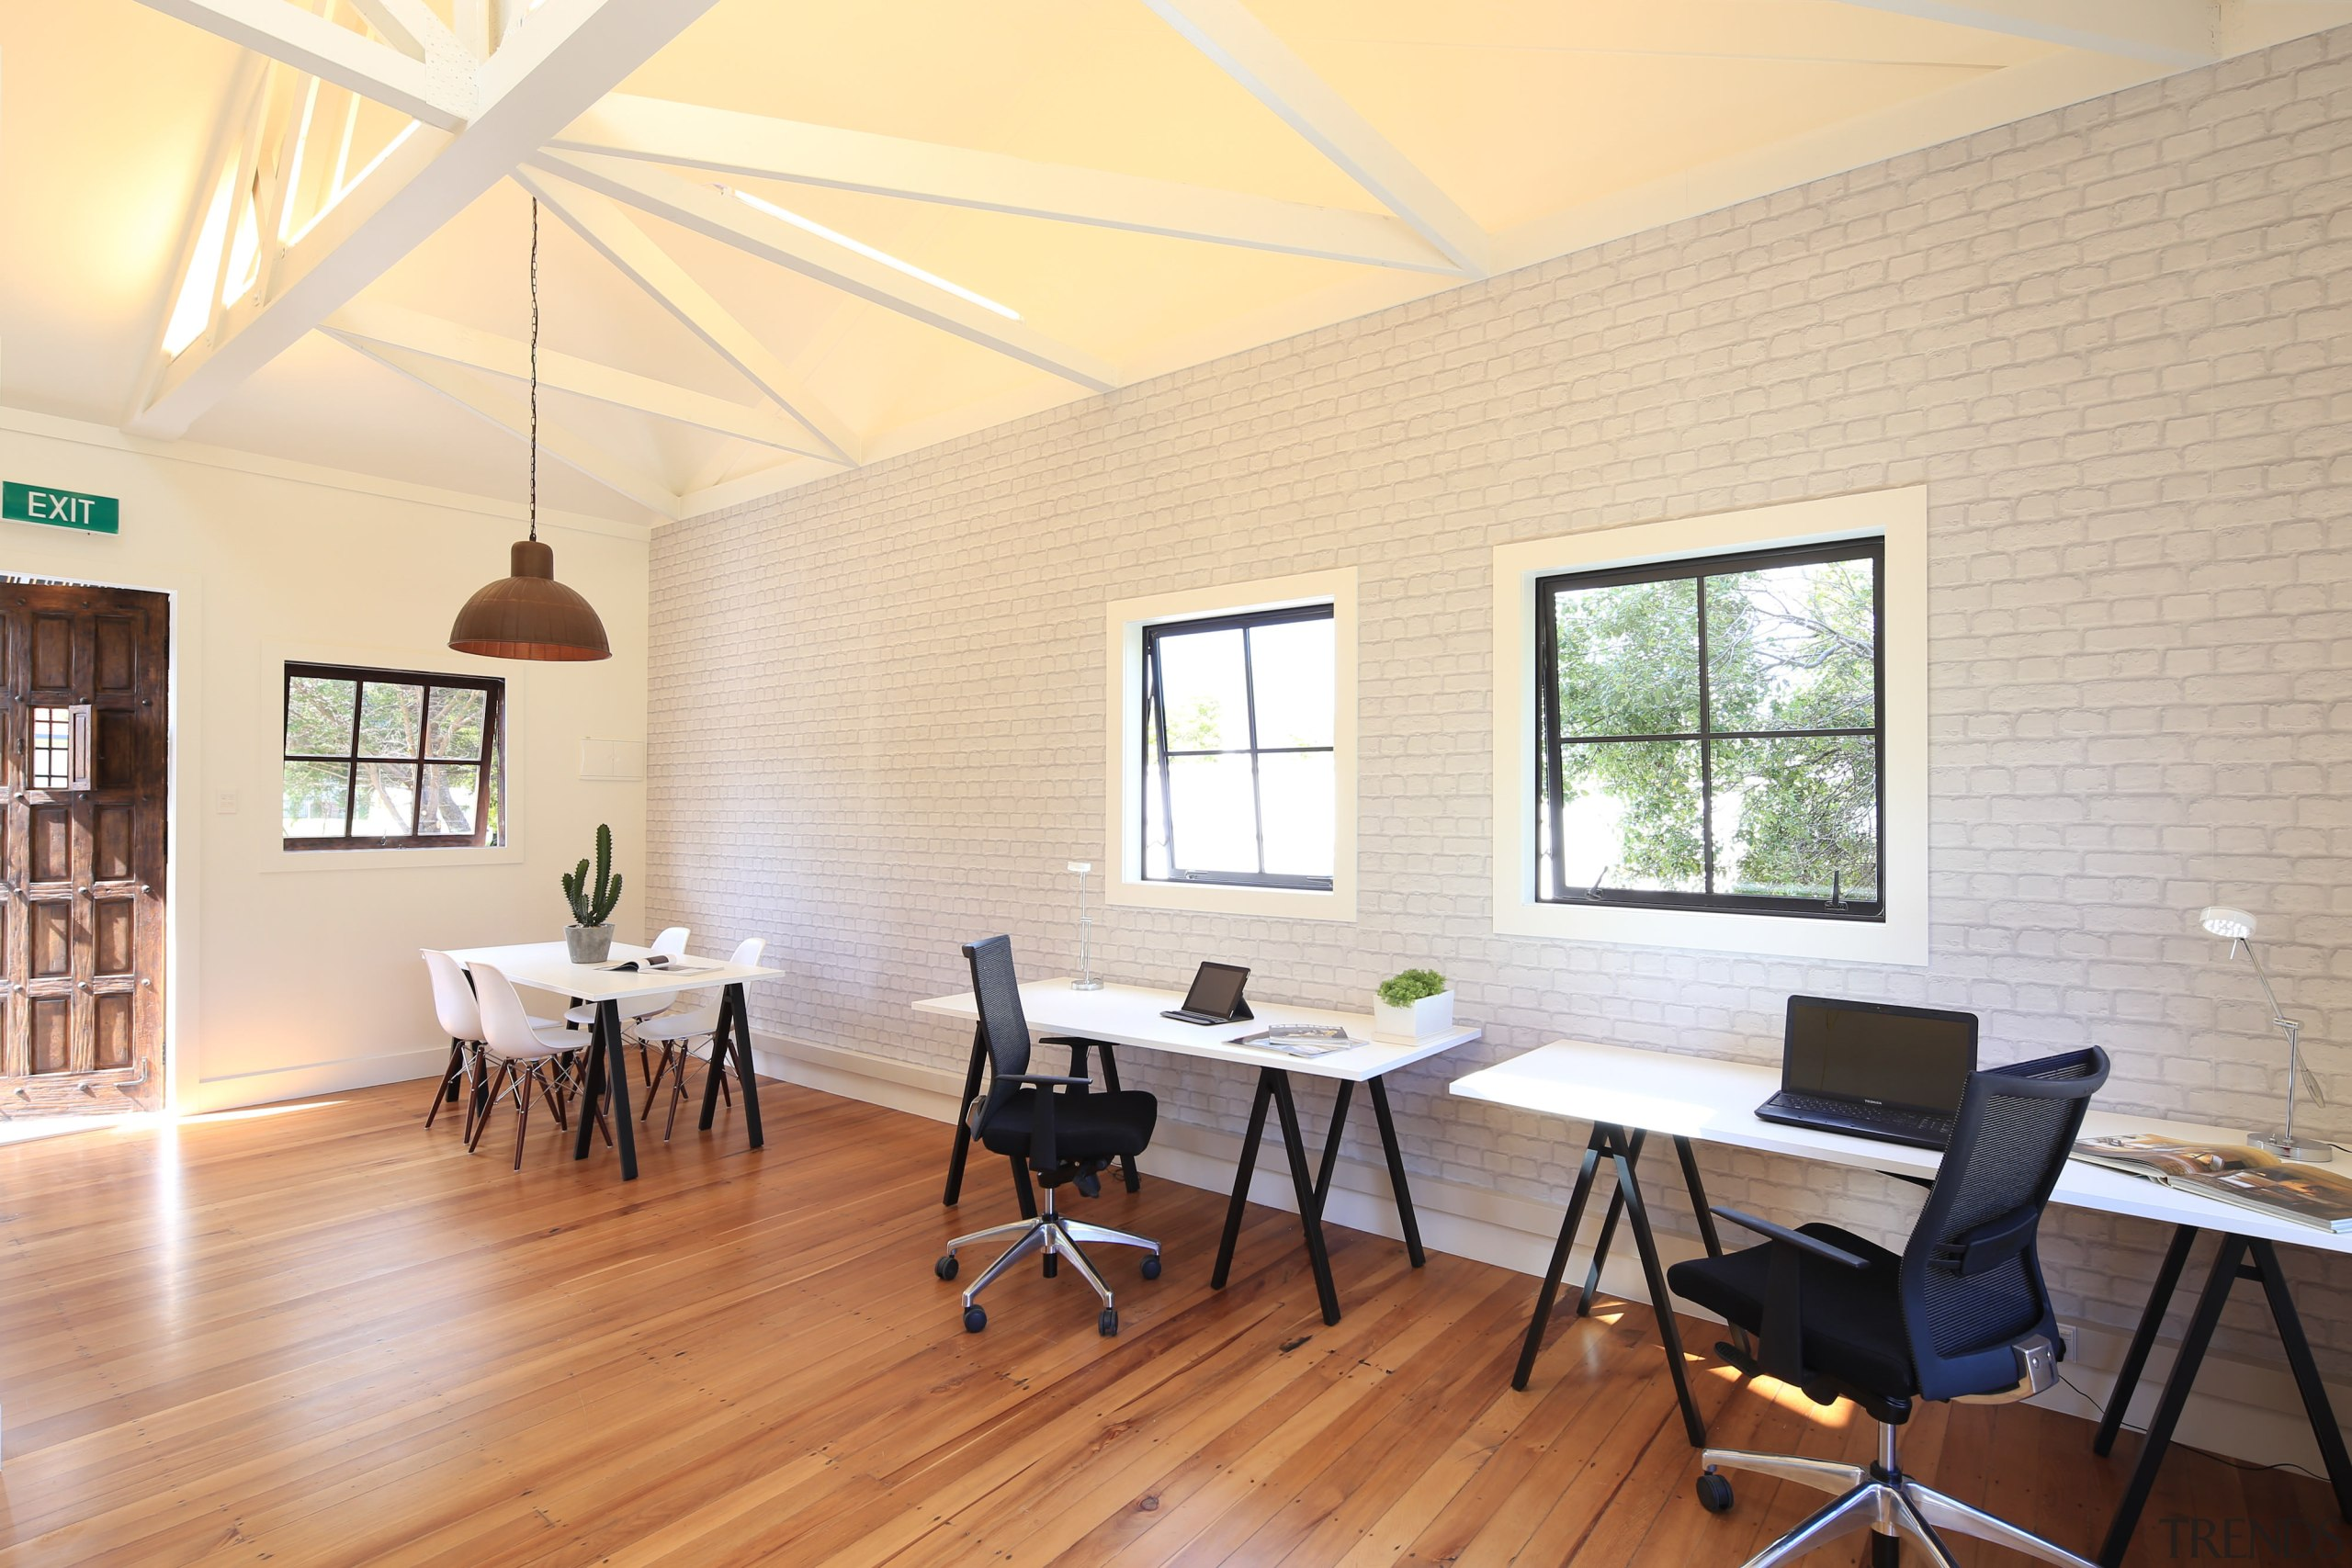 Light-filled and airy, the studios are finished in ceiling, daylighting, dining room, floor, flooring, furniture, house, interior design, real estate, room, table, window, wood flooring, orange